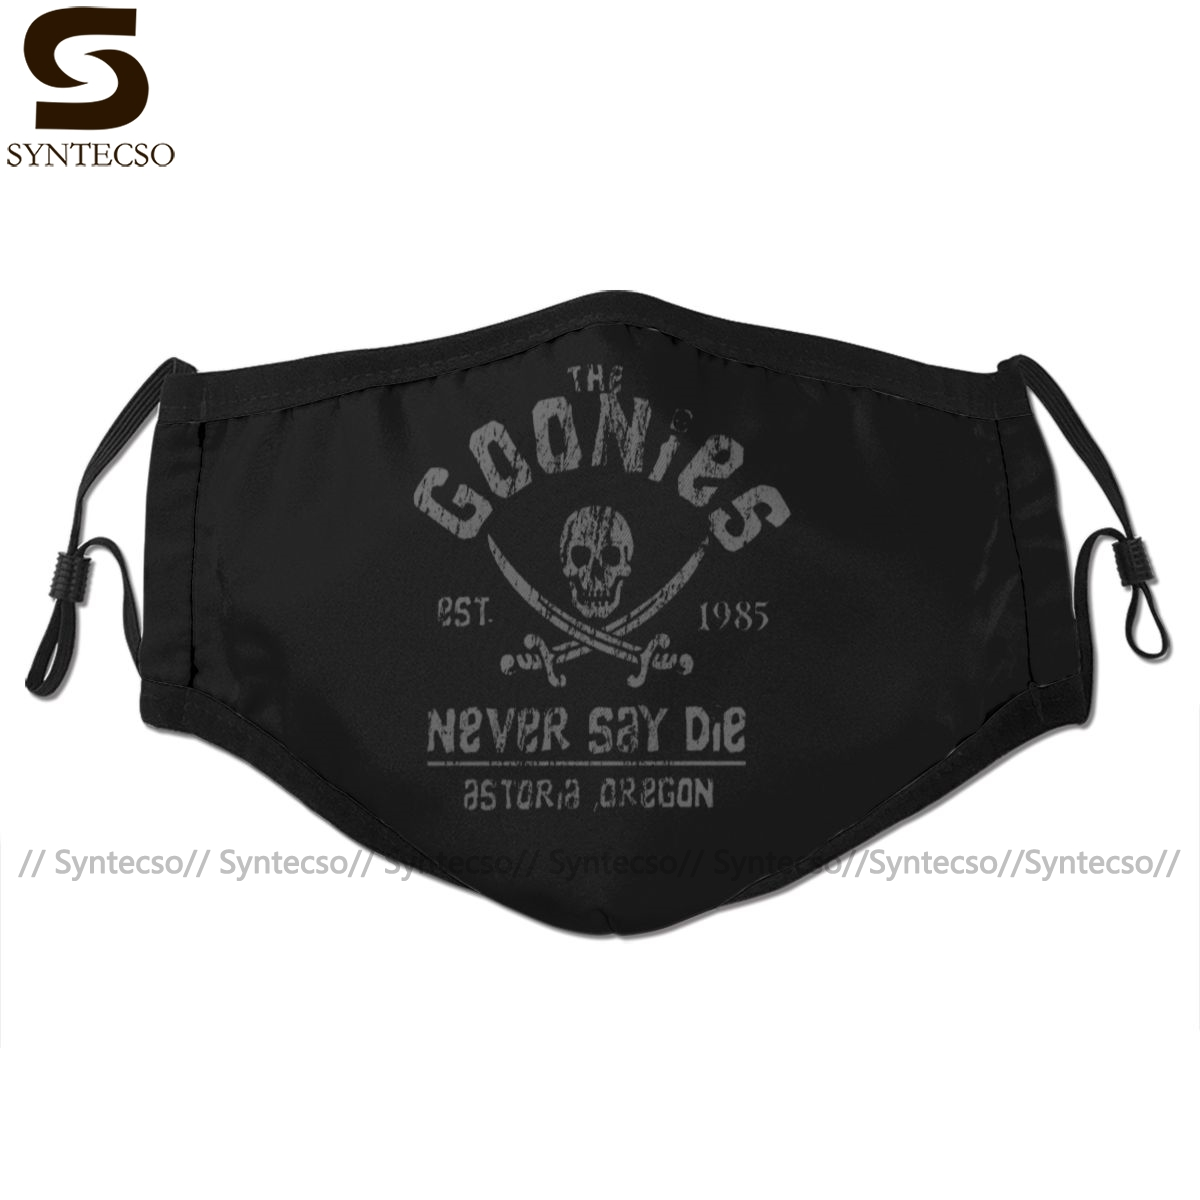 Skull Mouth Face Mask The Goonies Never Say Die Grey On Black Facial Mask Fashion Funny with 2 Filters for Adult